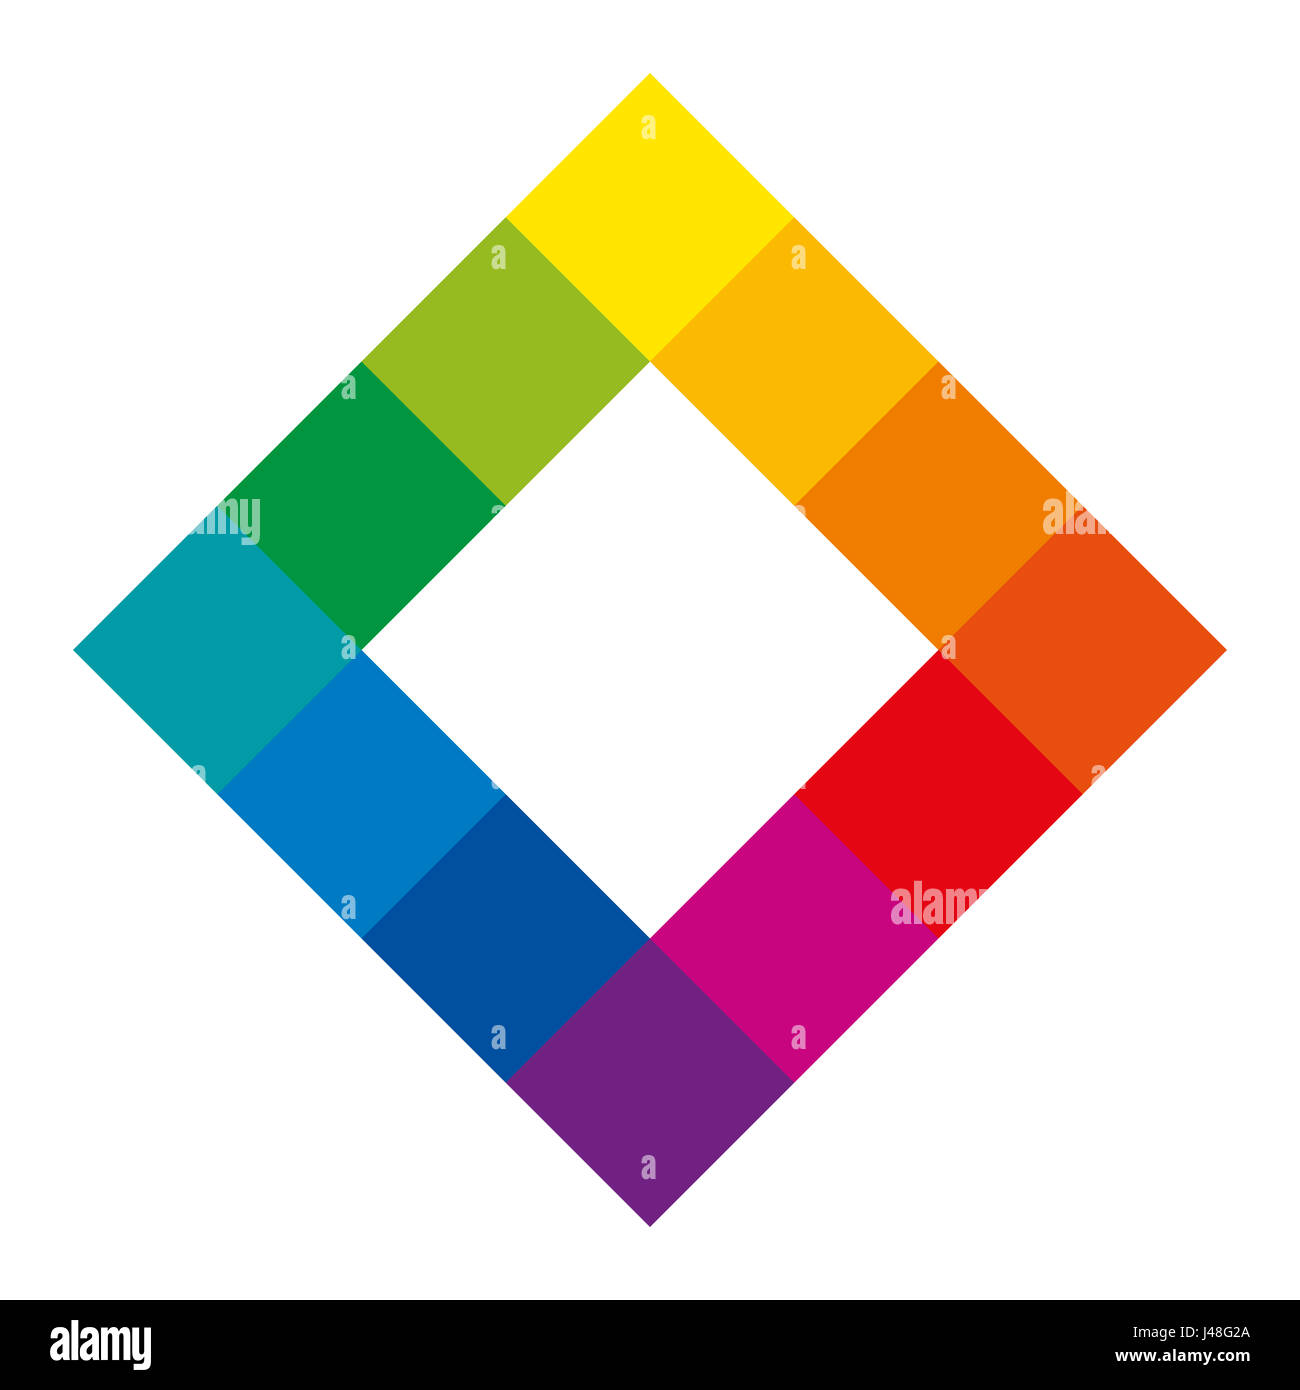 Twelve Unique Color Hues Of The Wheel In Square Shape Showing Relationship Between Primary